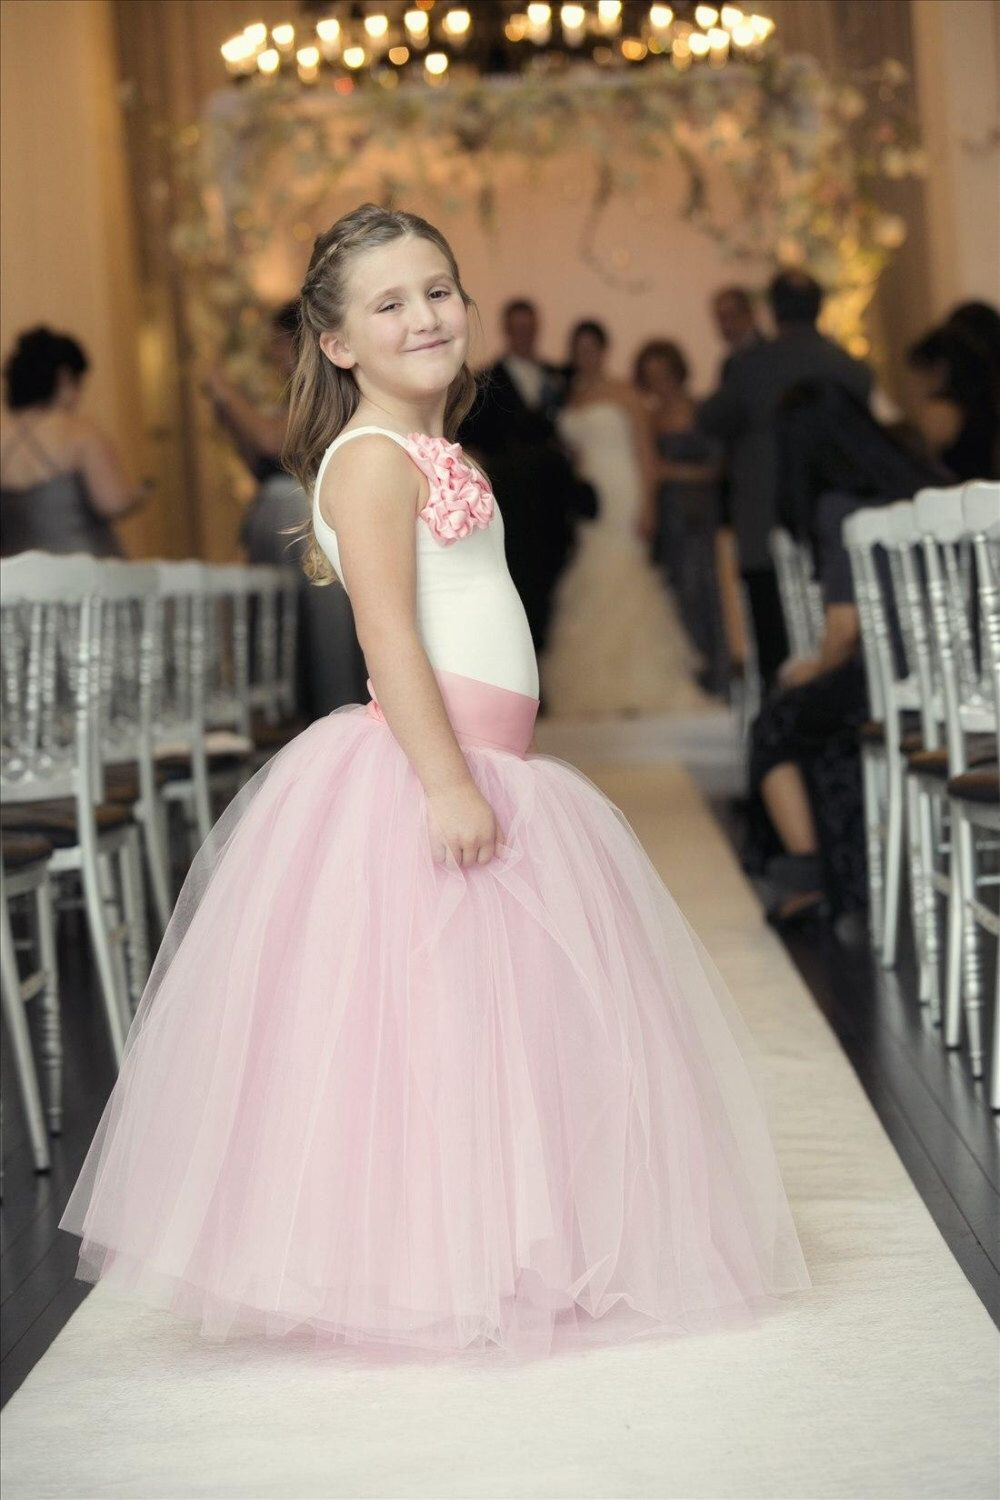 Pin By Jen Mccann On Wedding Ideas Pinterest Flower Girl Dresses